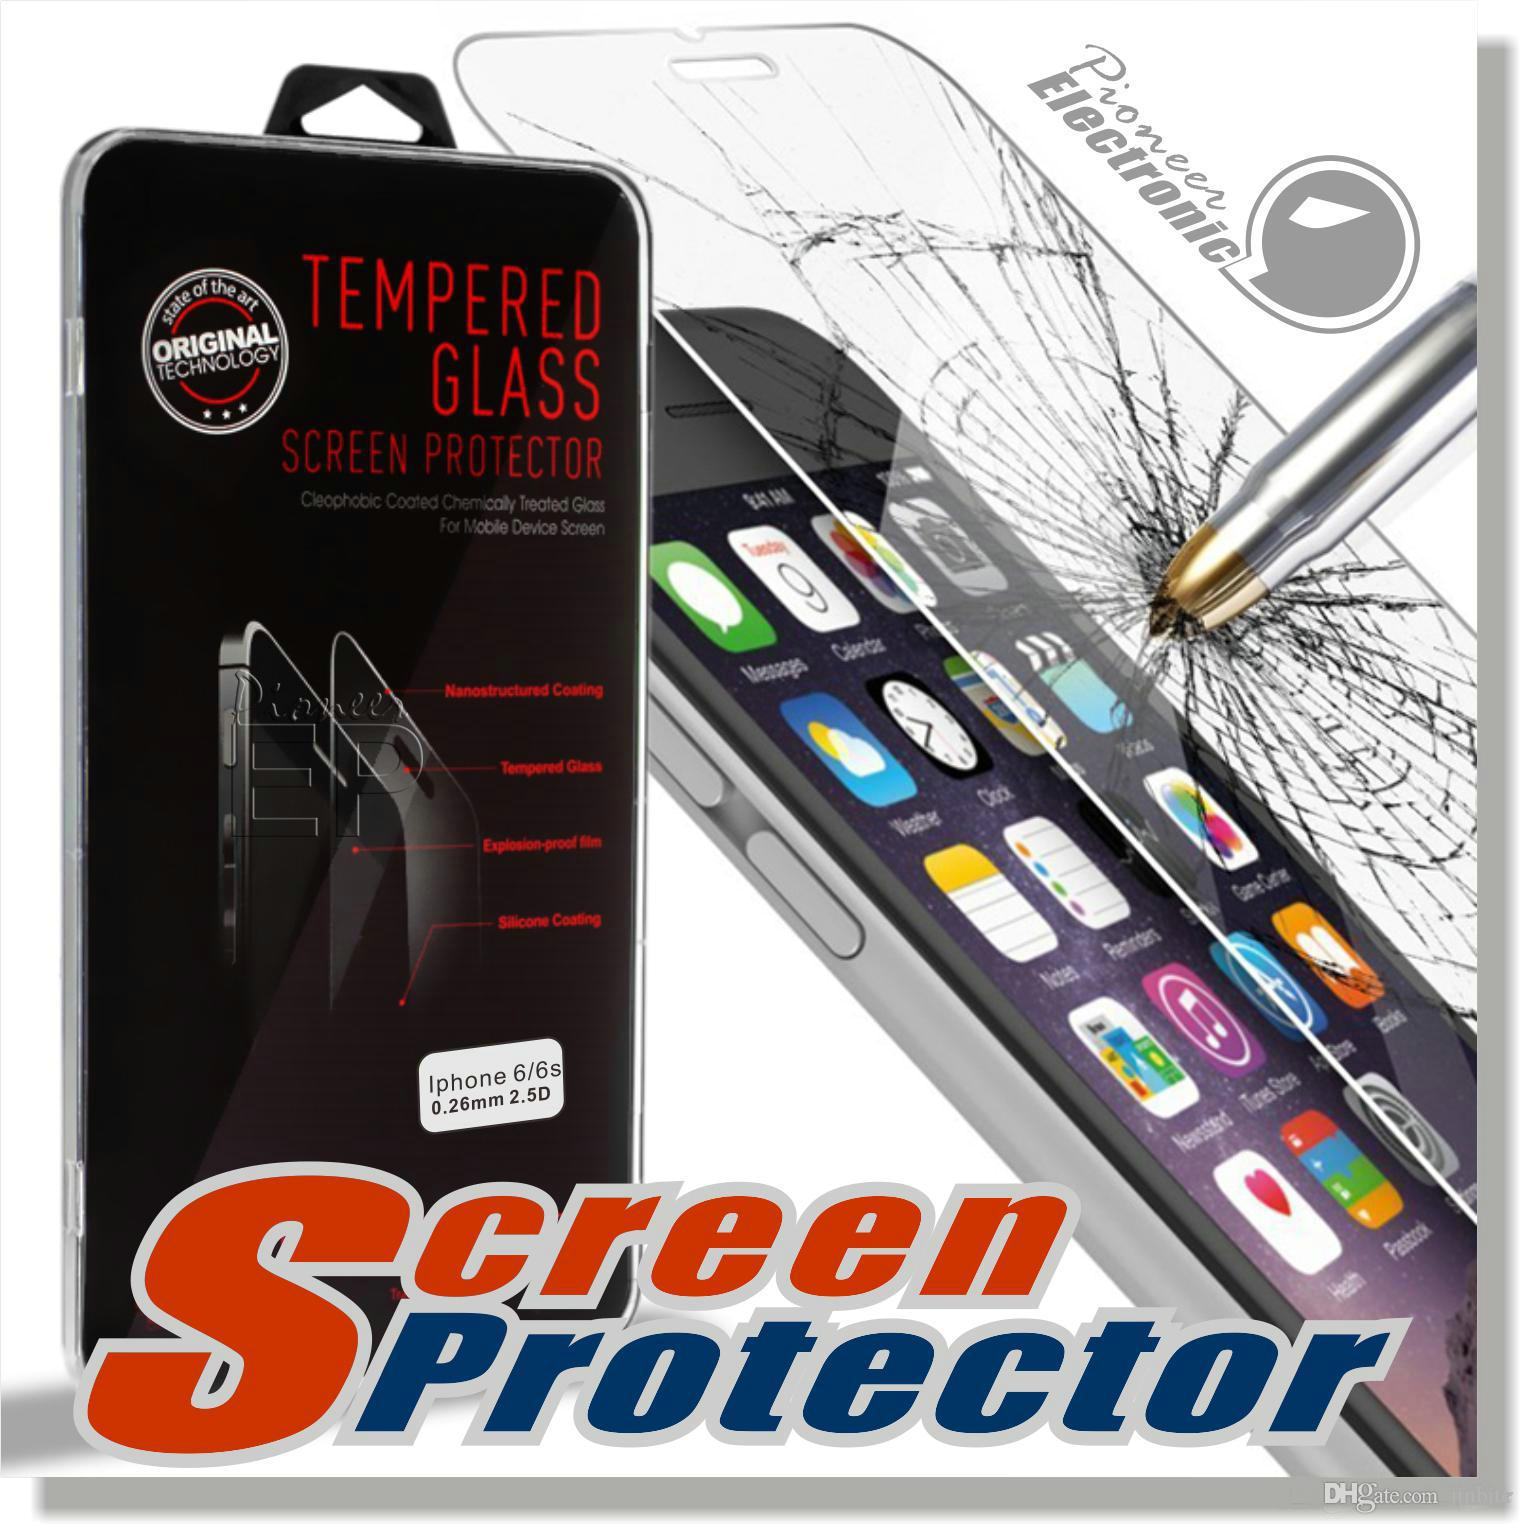 2 5d Tempered Glass For Iphone 6 6s 7 Plus Screen Protector Explosion Proof For Iphone 6s Plus Iphone 5s Galaxy S7 S6 S5 Note 5 Om Ce1 Phone Screen